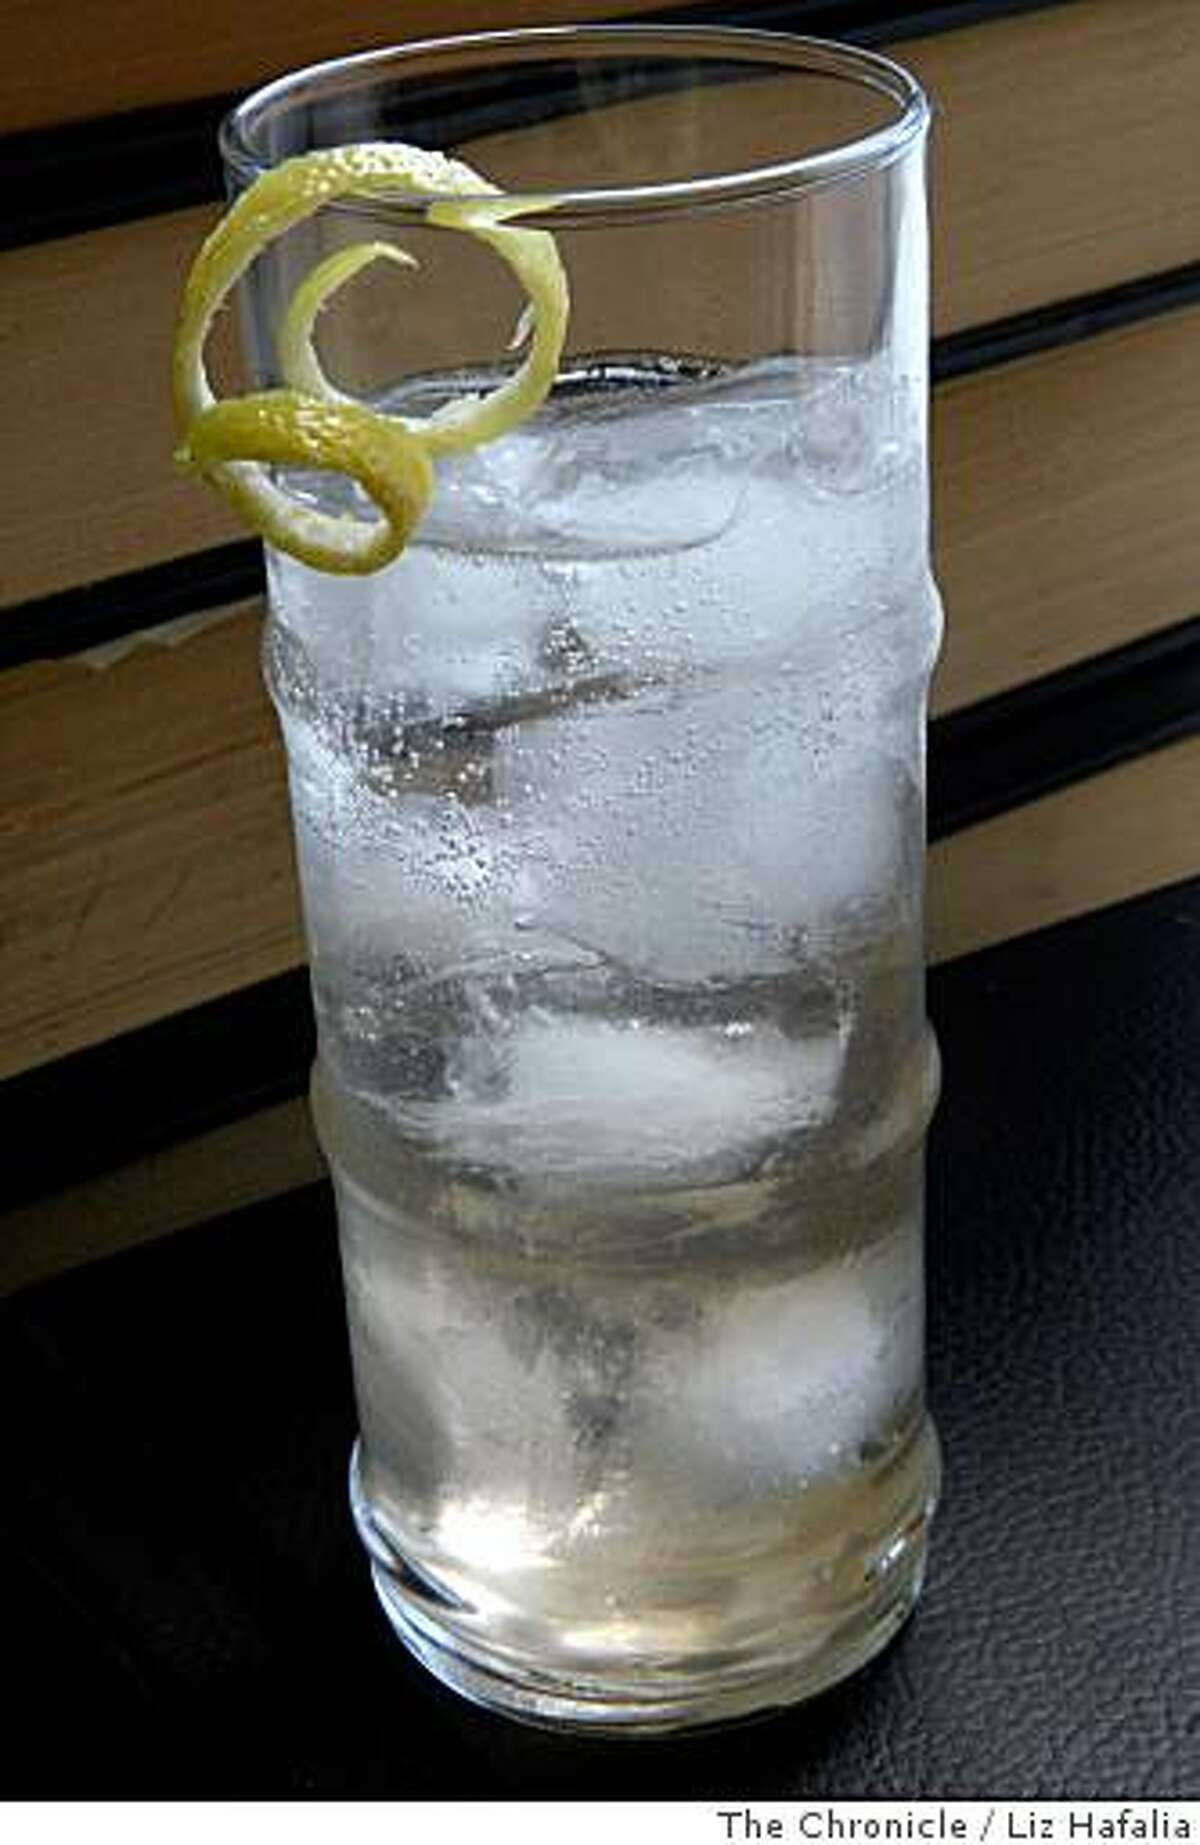 A Sparkling Gin Refresher Named for No One & Prepared Somewhat in the Style of the 19th Century.